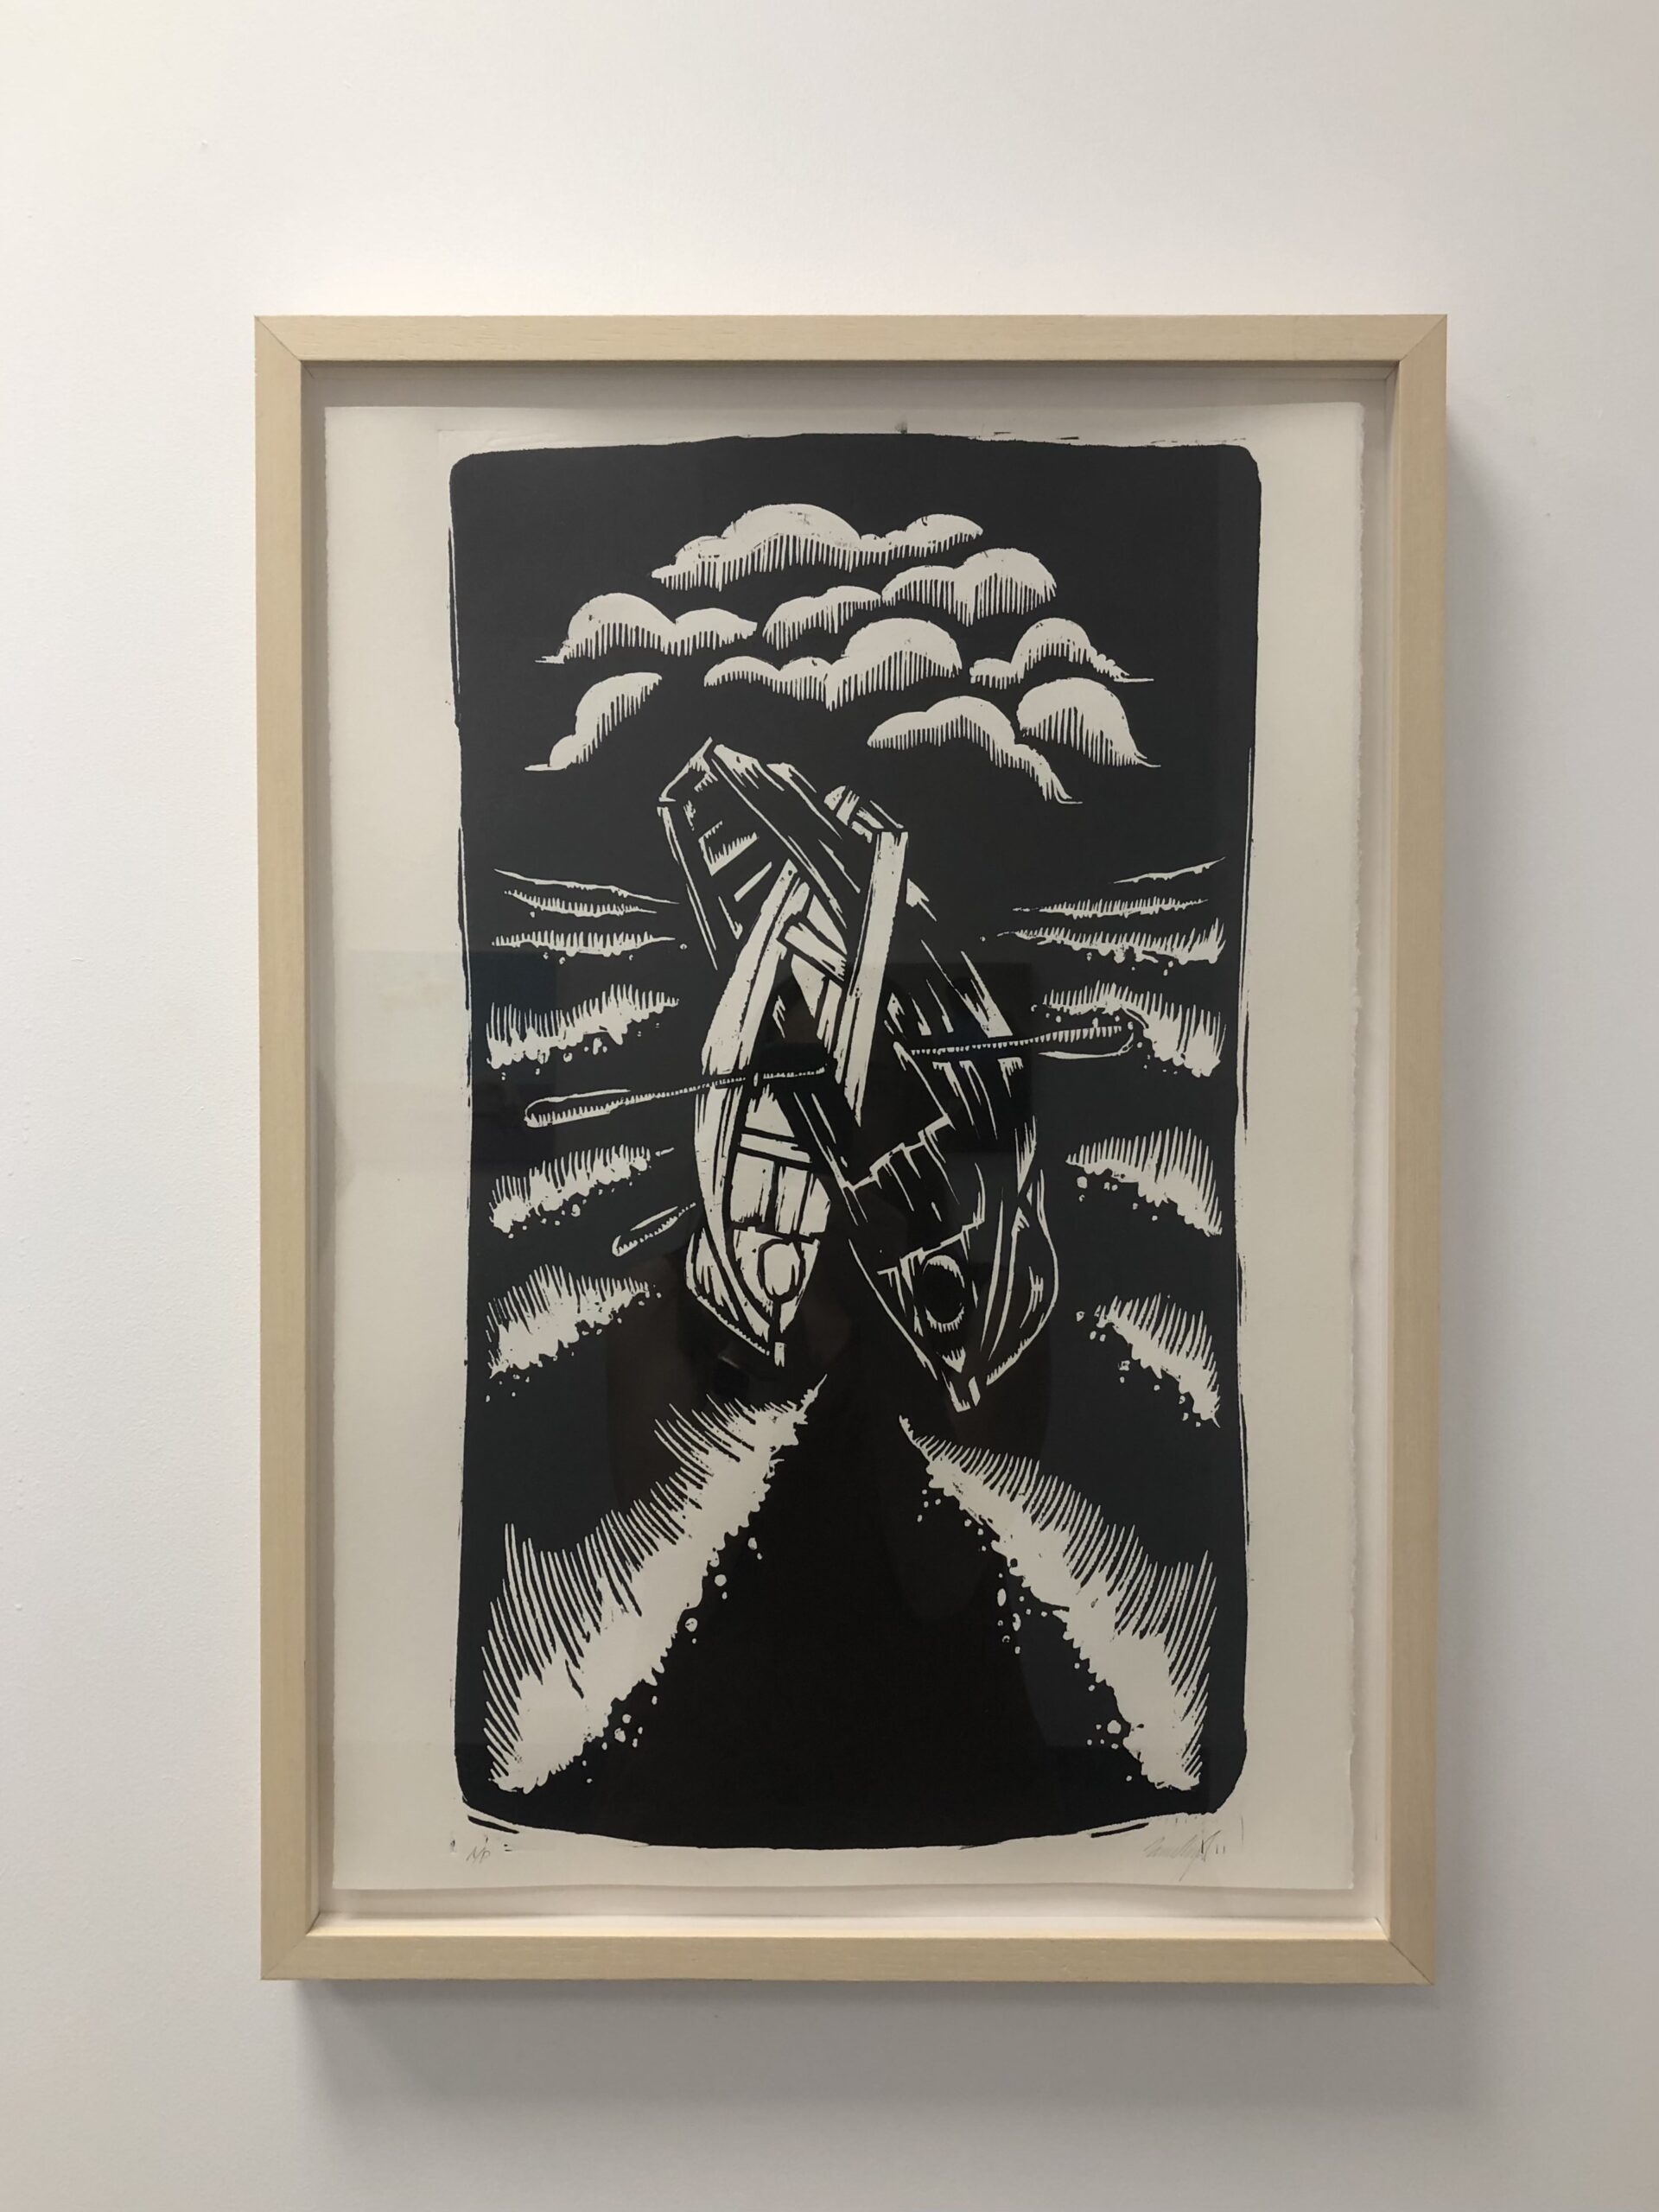 'Crossing Ships' Jamie Coxon 380x560mm $220 unframed - Limited editions available to purchase on order